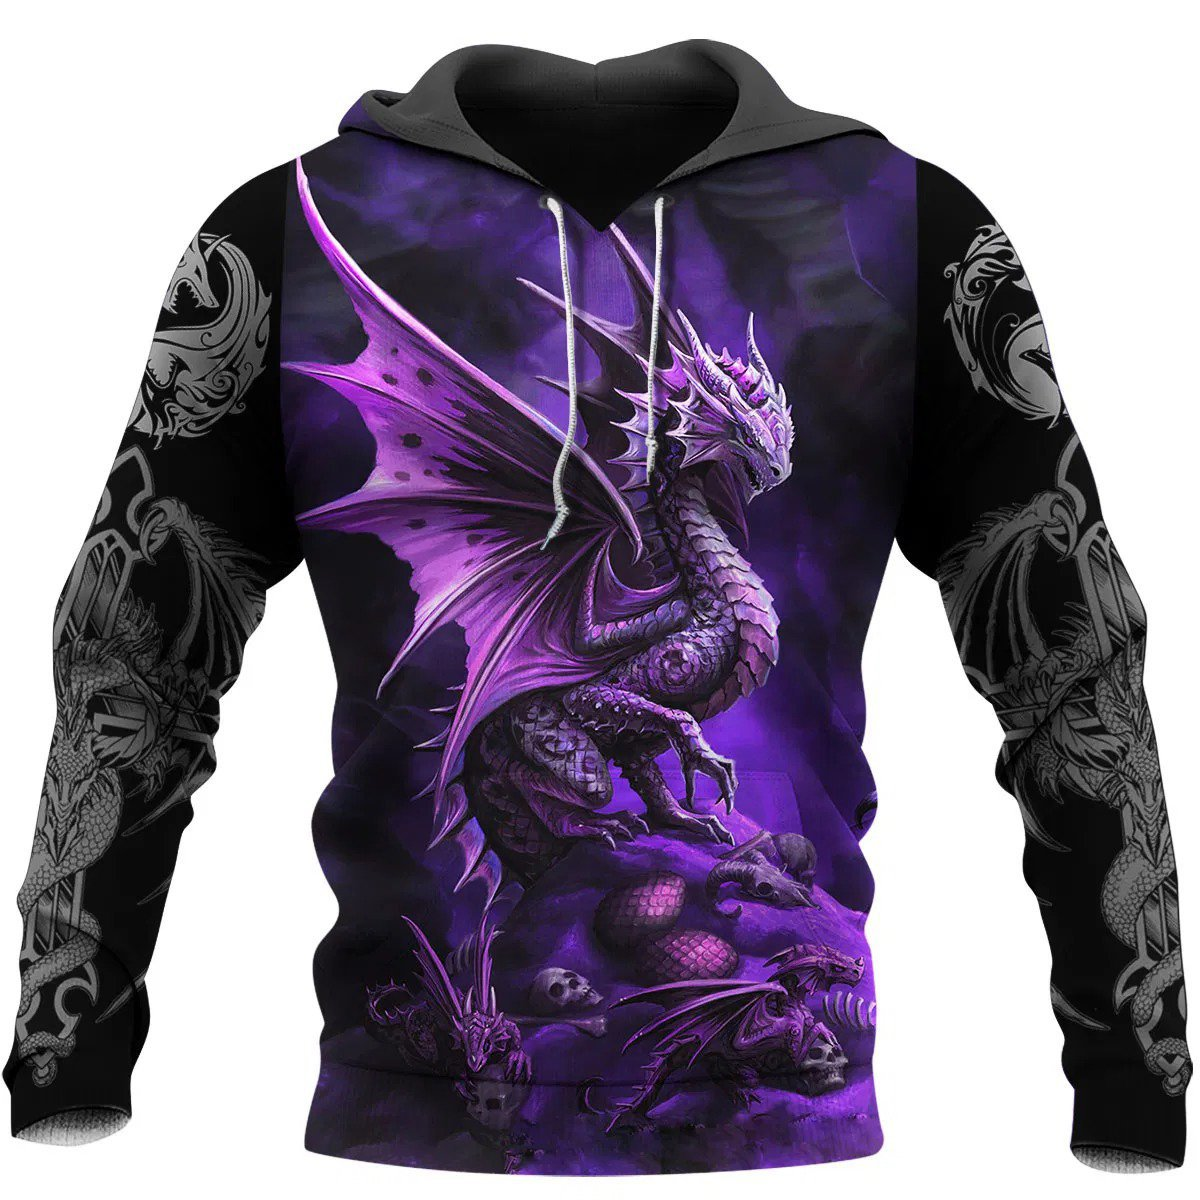 Dragon 3D All Over Printed Hoodie AM200629